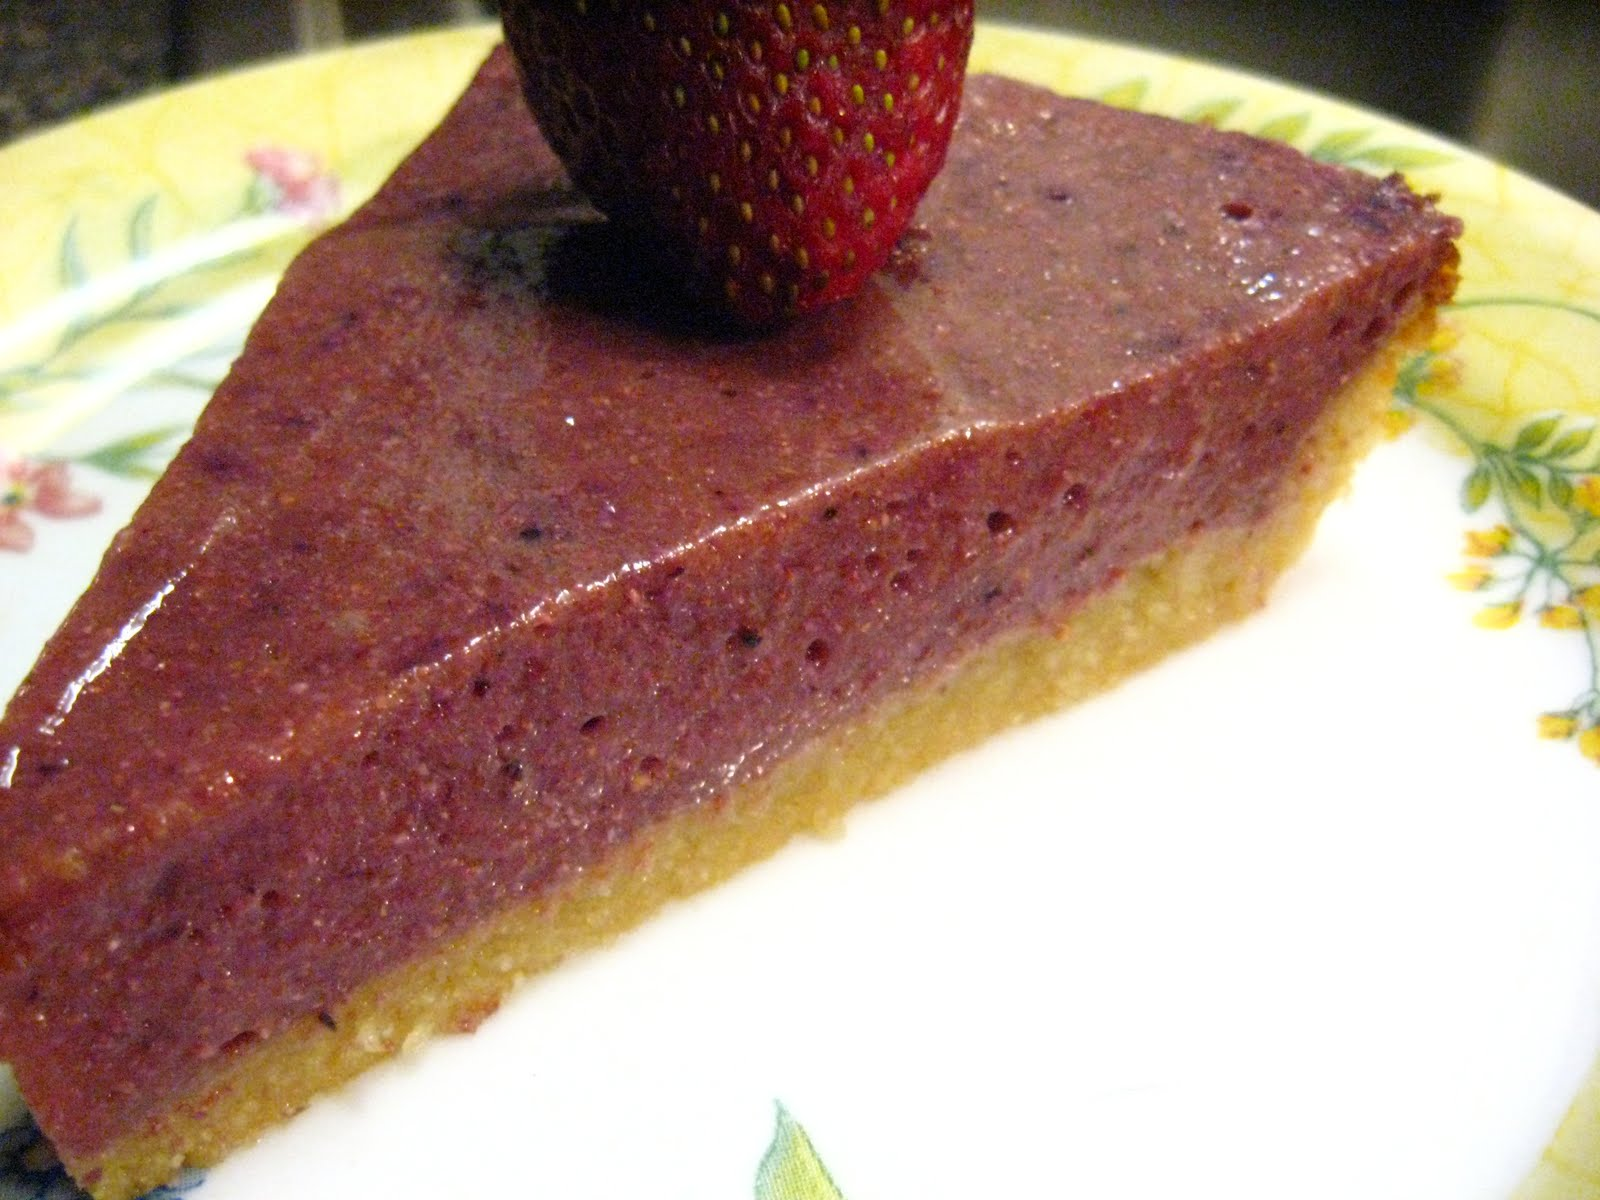 ... gluten free gingersnap gluten free chocolate pie with ginger snap